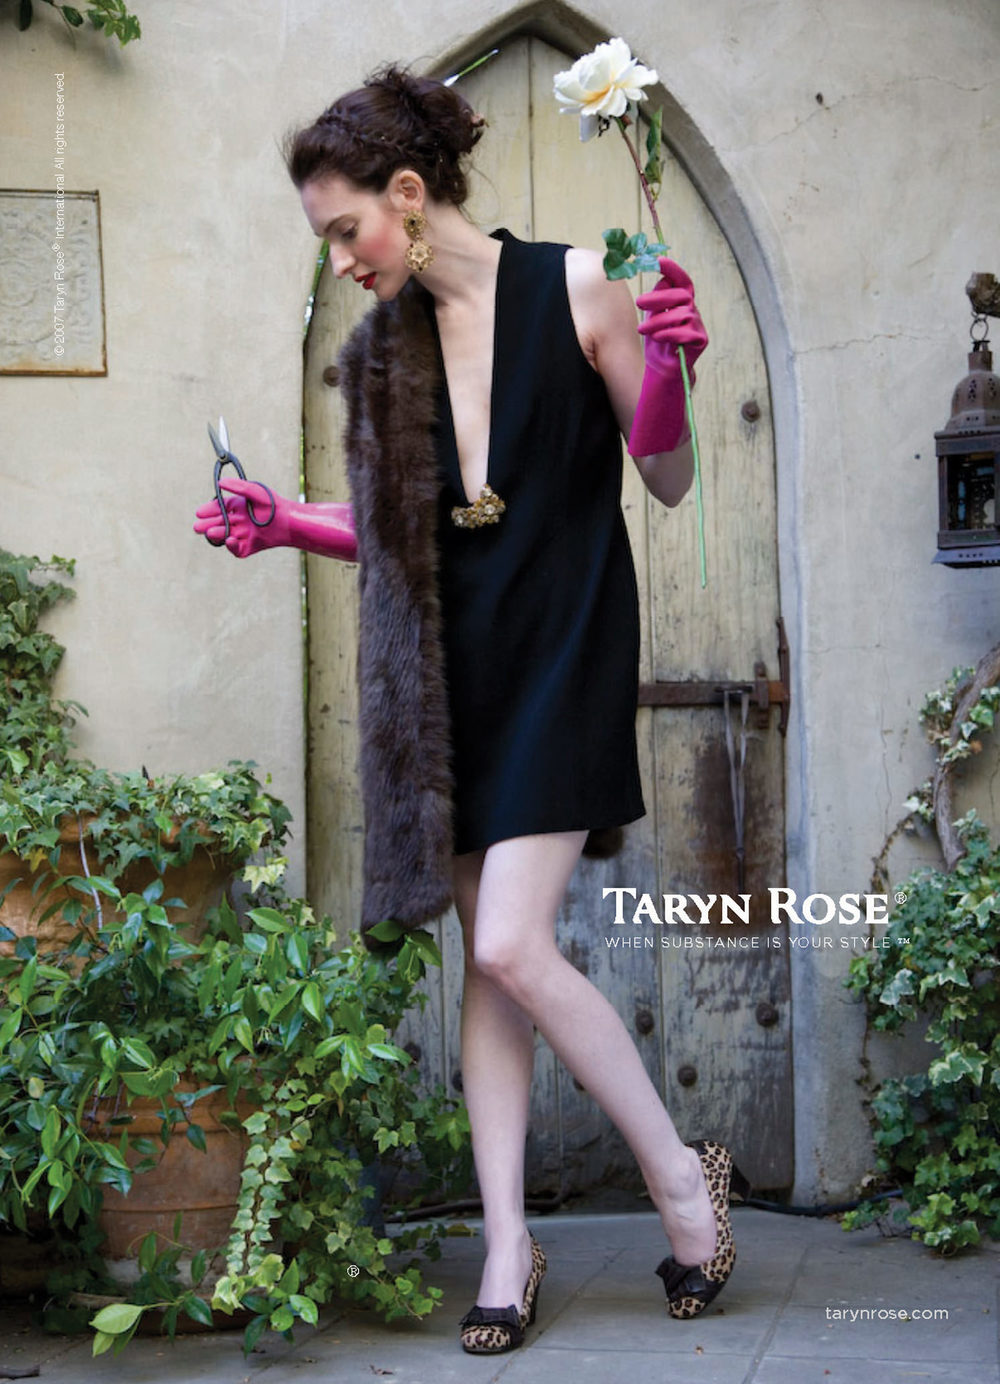 Taryn_Rose_Shoes_poster__premium_line_Pink_Gloves.jpg